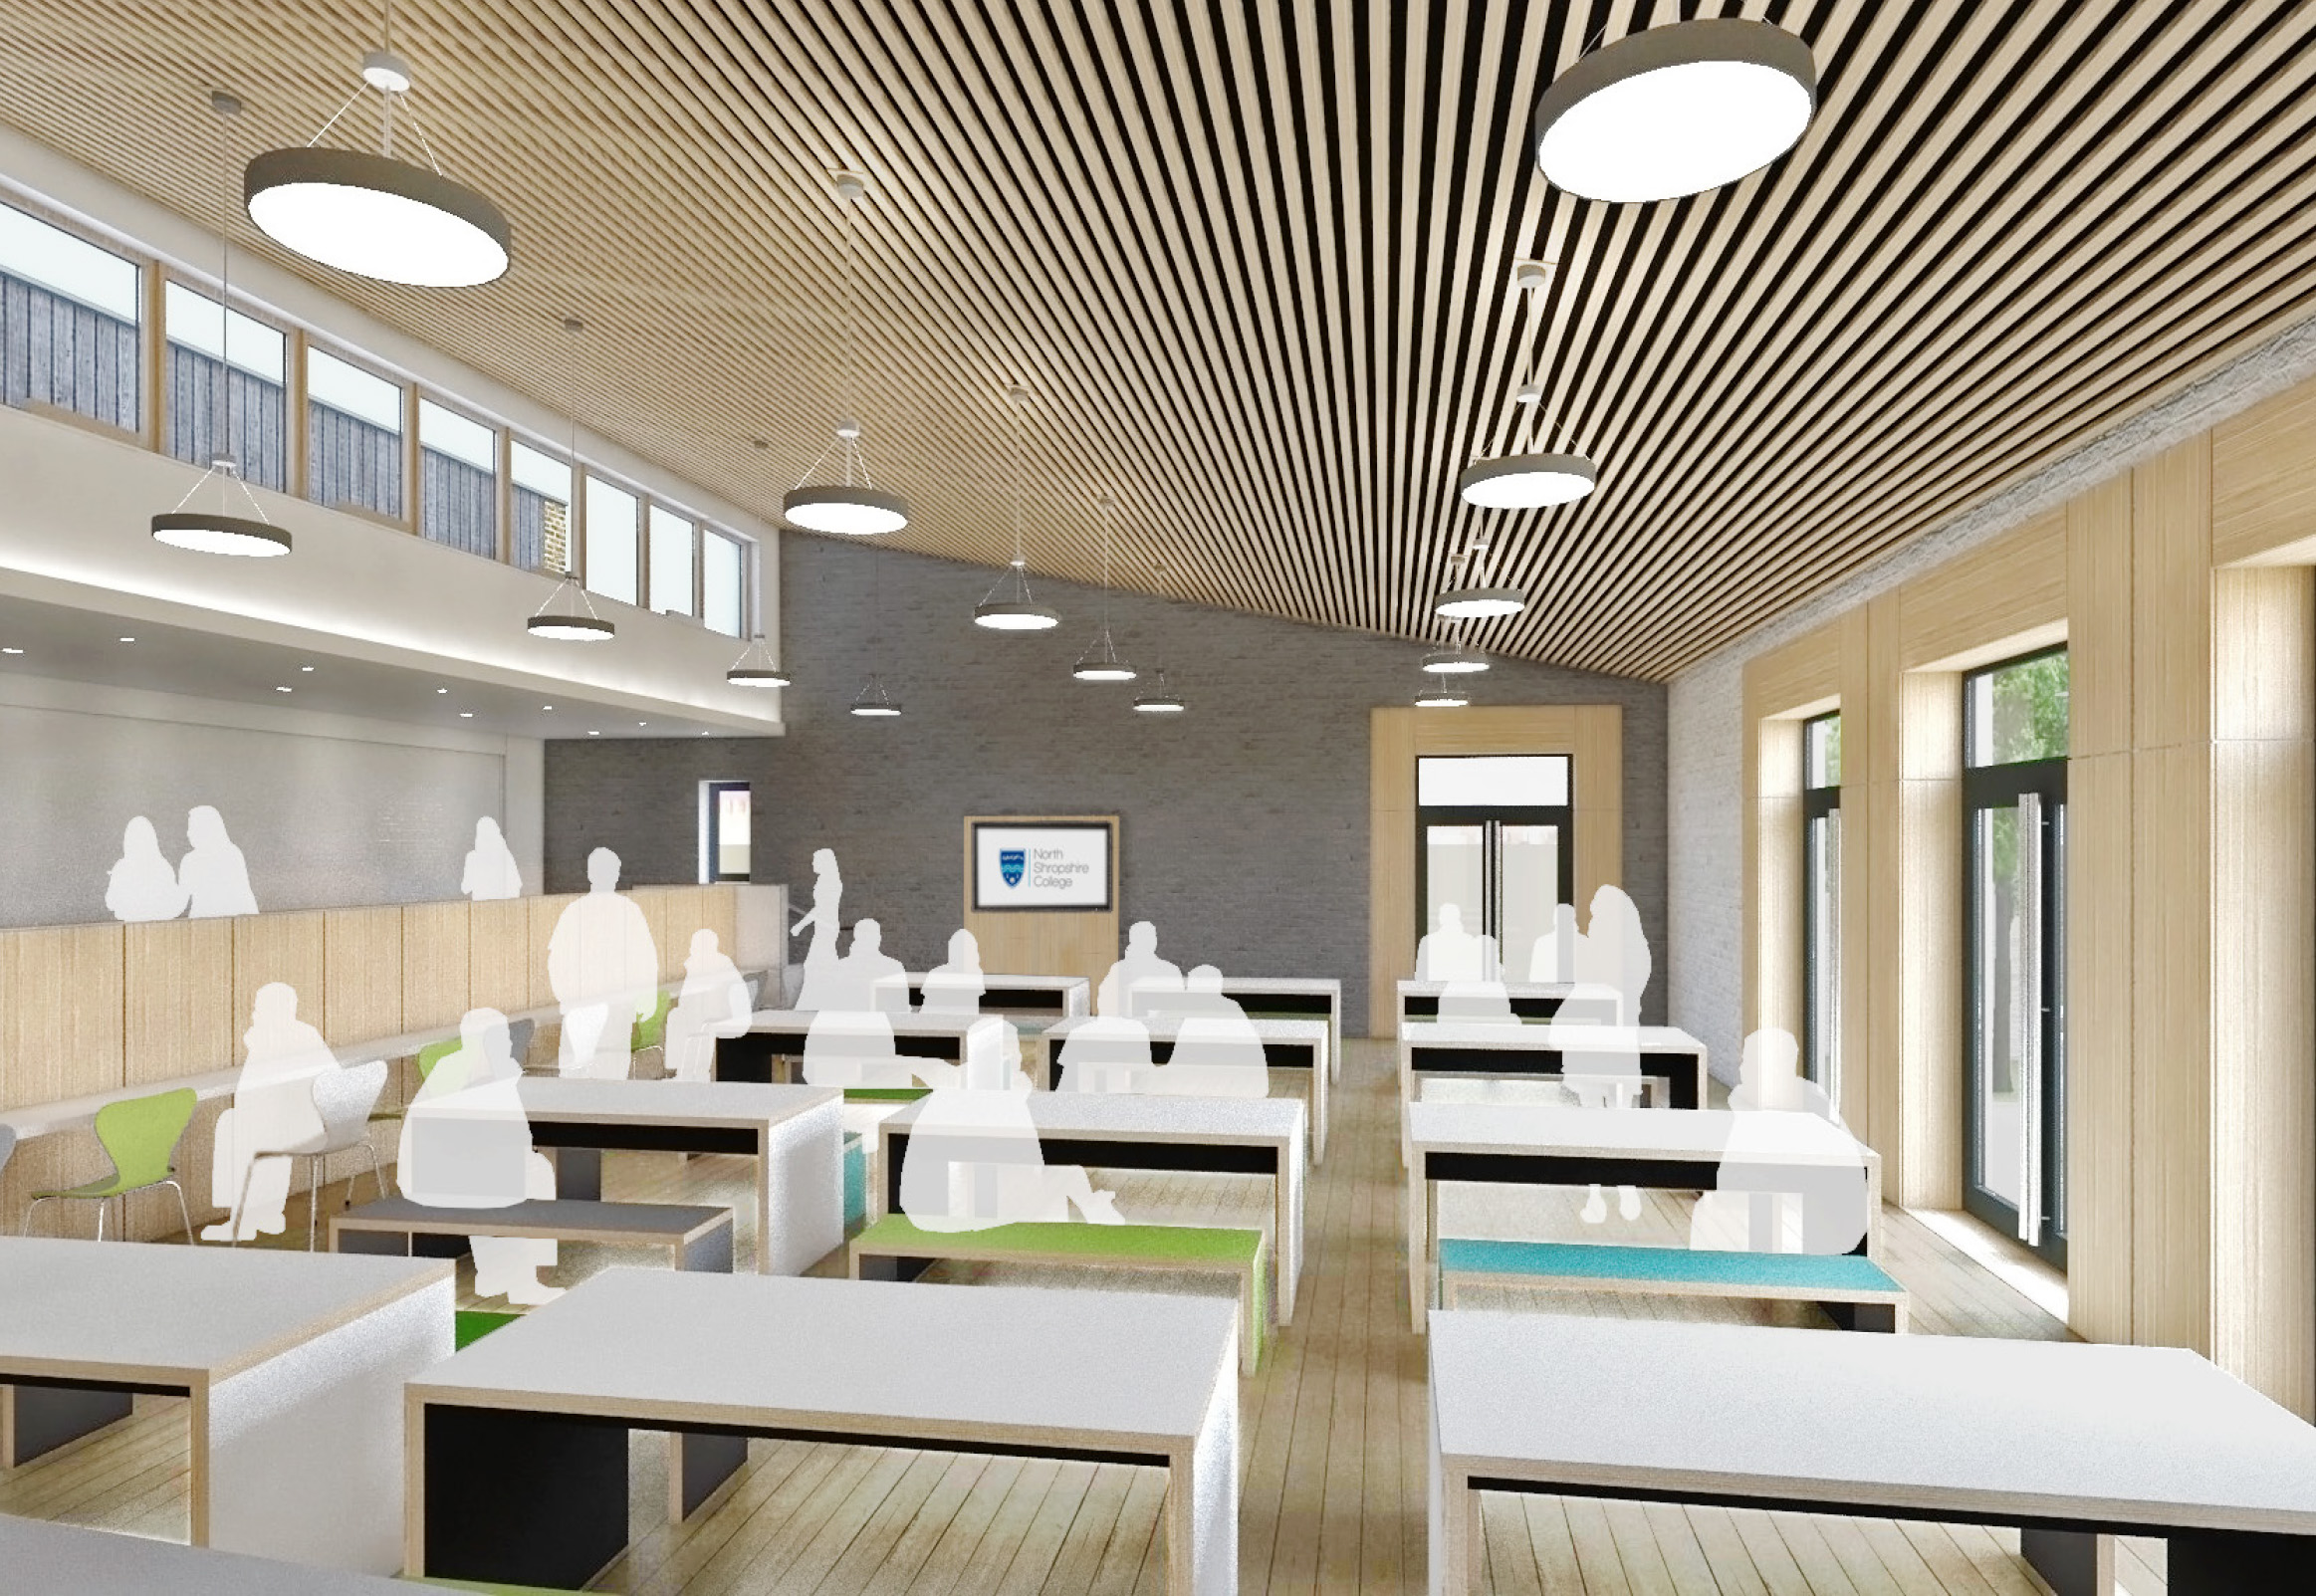 Visual of Proposed Refectory Area by Architect [copyright Hewitt Studios LLP]